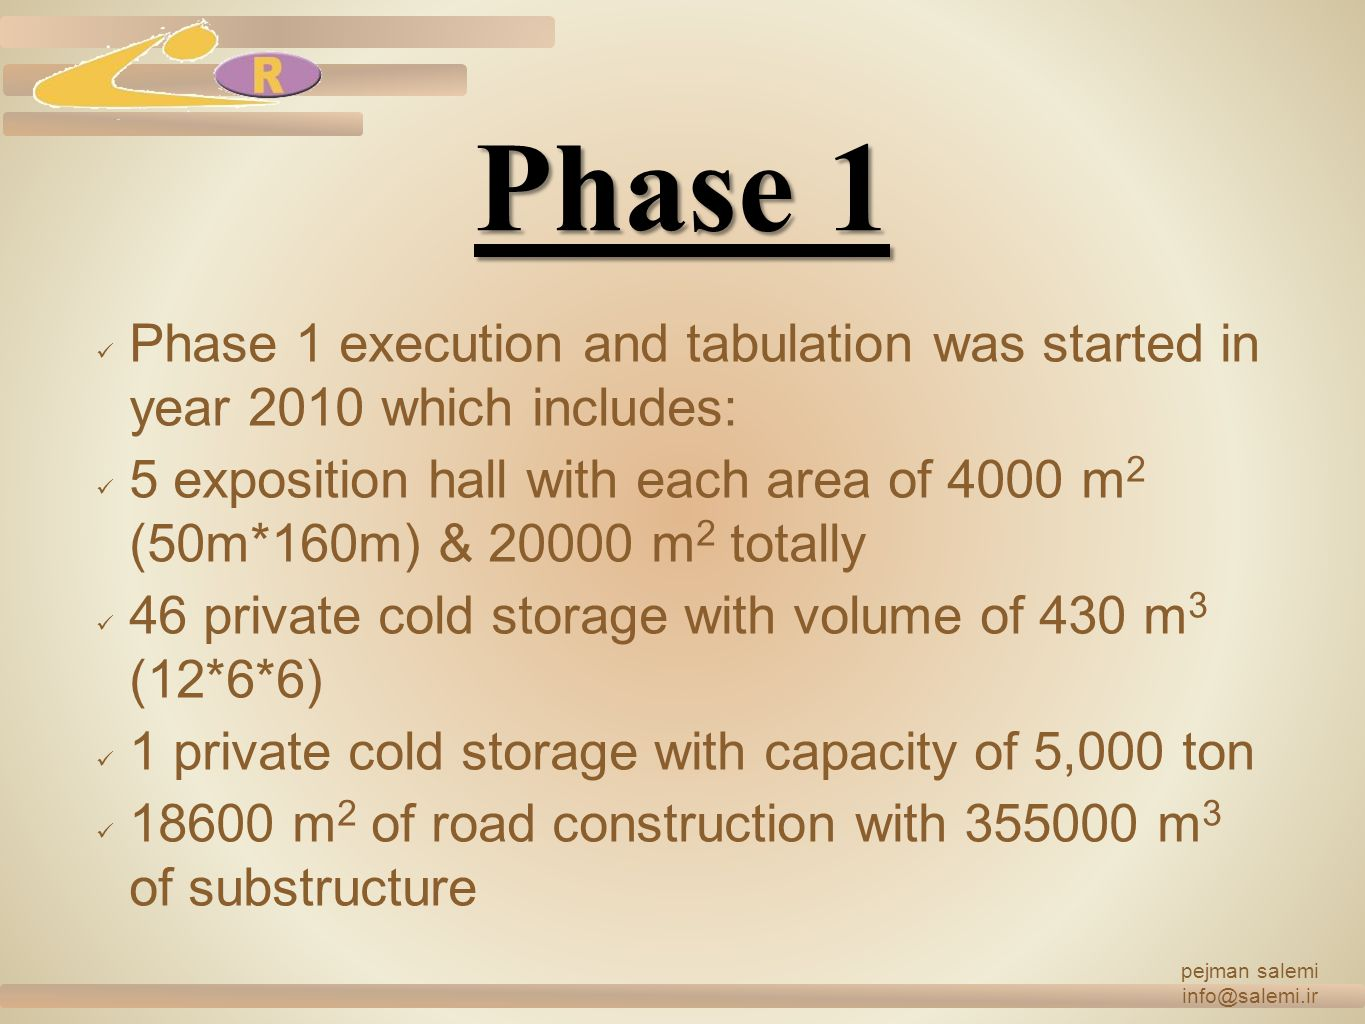 Phase 1 Phase 1 execution and tabulation was started in year 2010 which includes: 5 exposition hall with each area of 4000 m 2 (50m*160m) & 20000 m 2